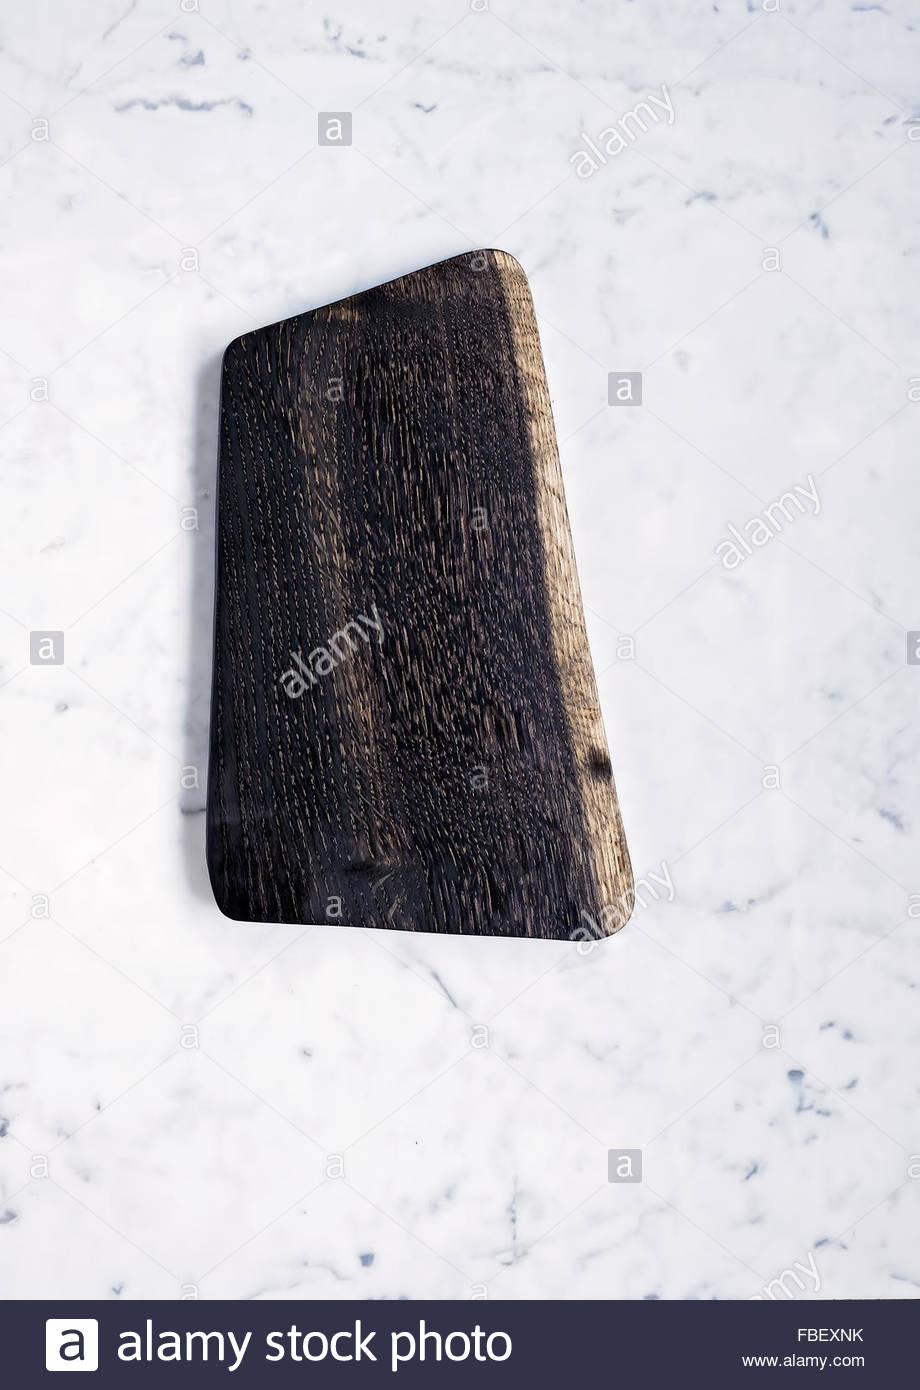 Black oak cutting board with space for text on marble background, close-up - Stock Image